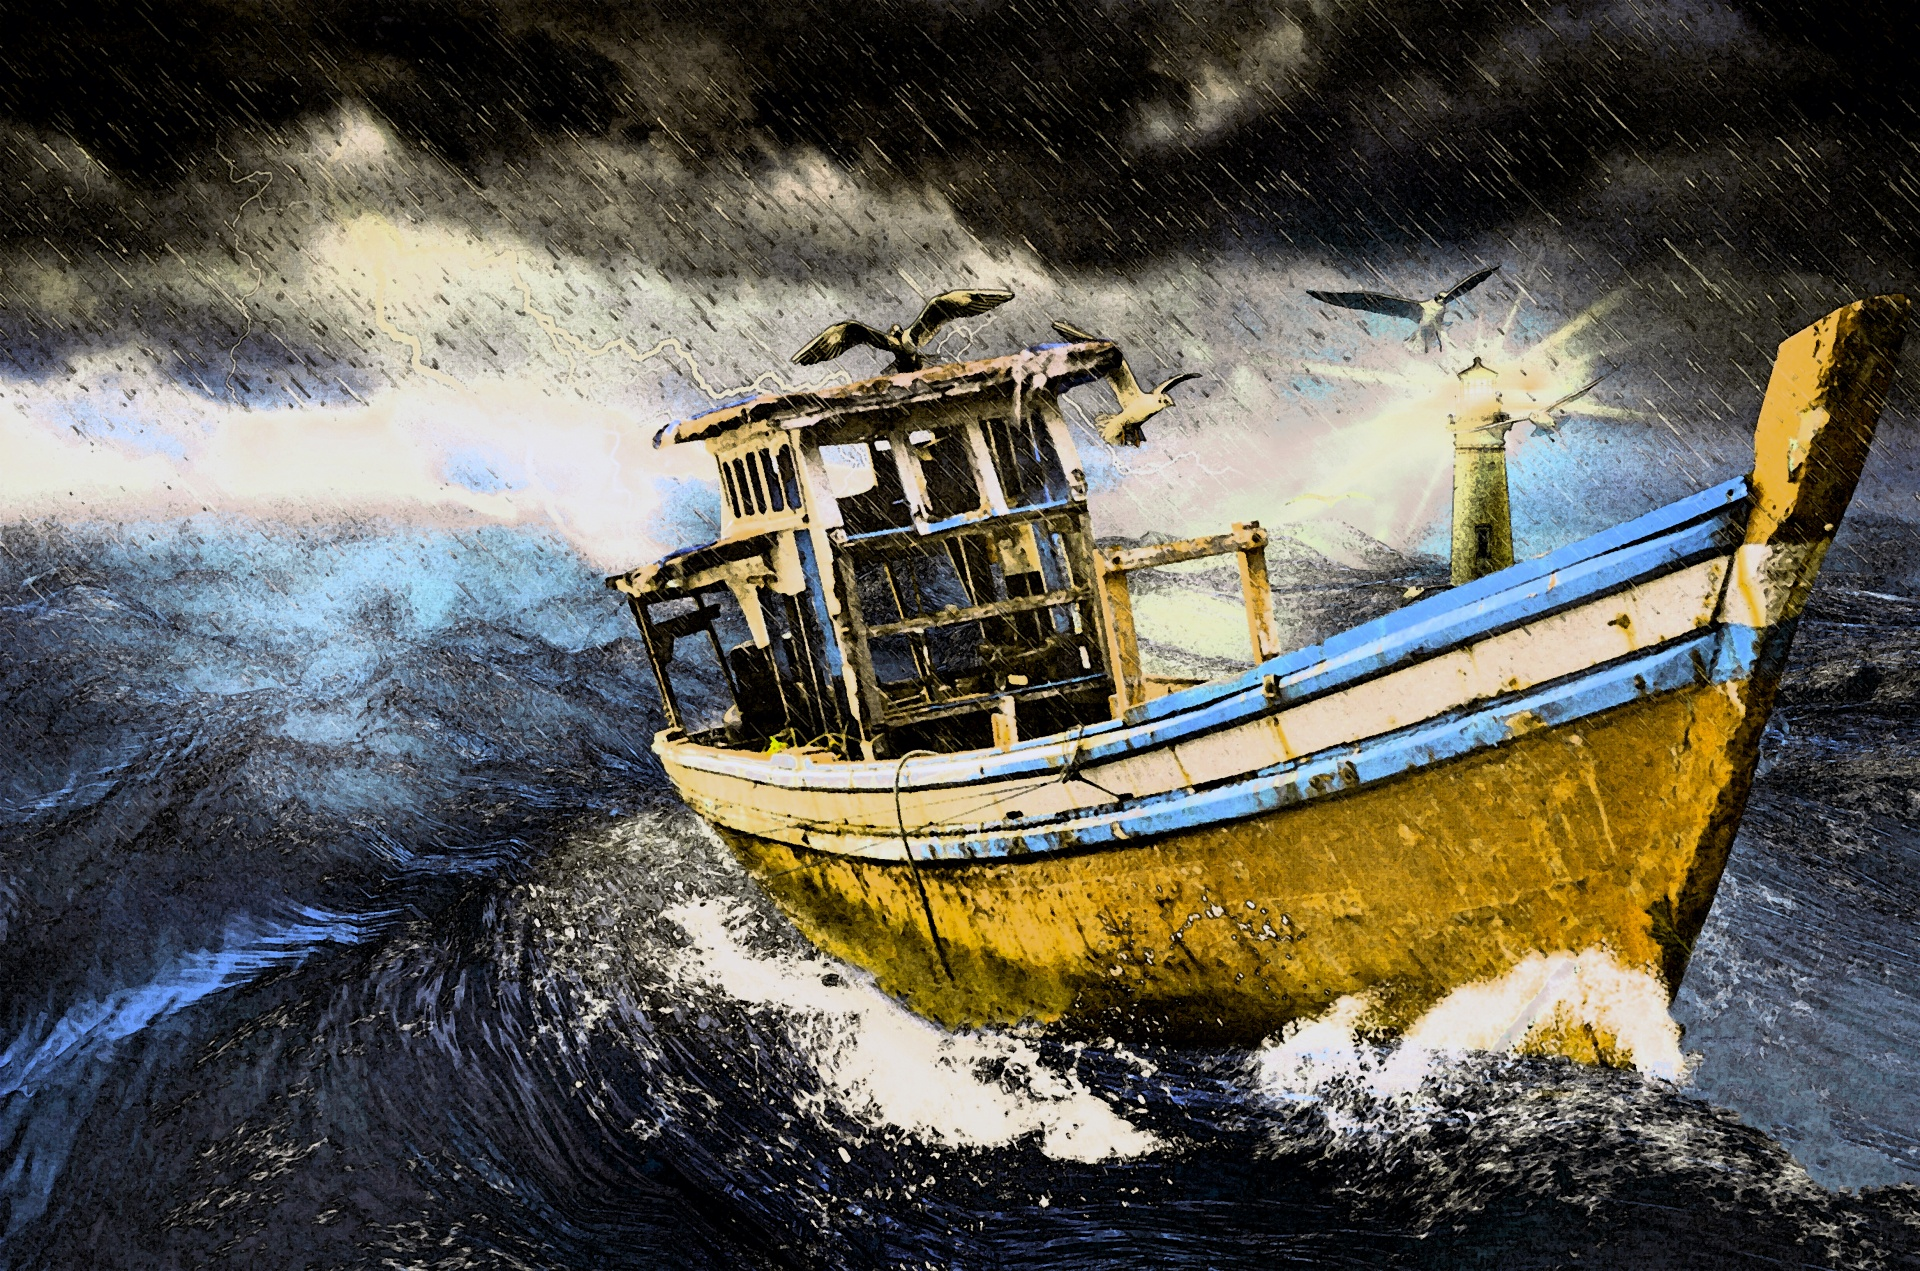 Painting - Old Boat In Storm Free Stock Photo - Public Domain Pictures